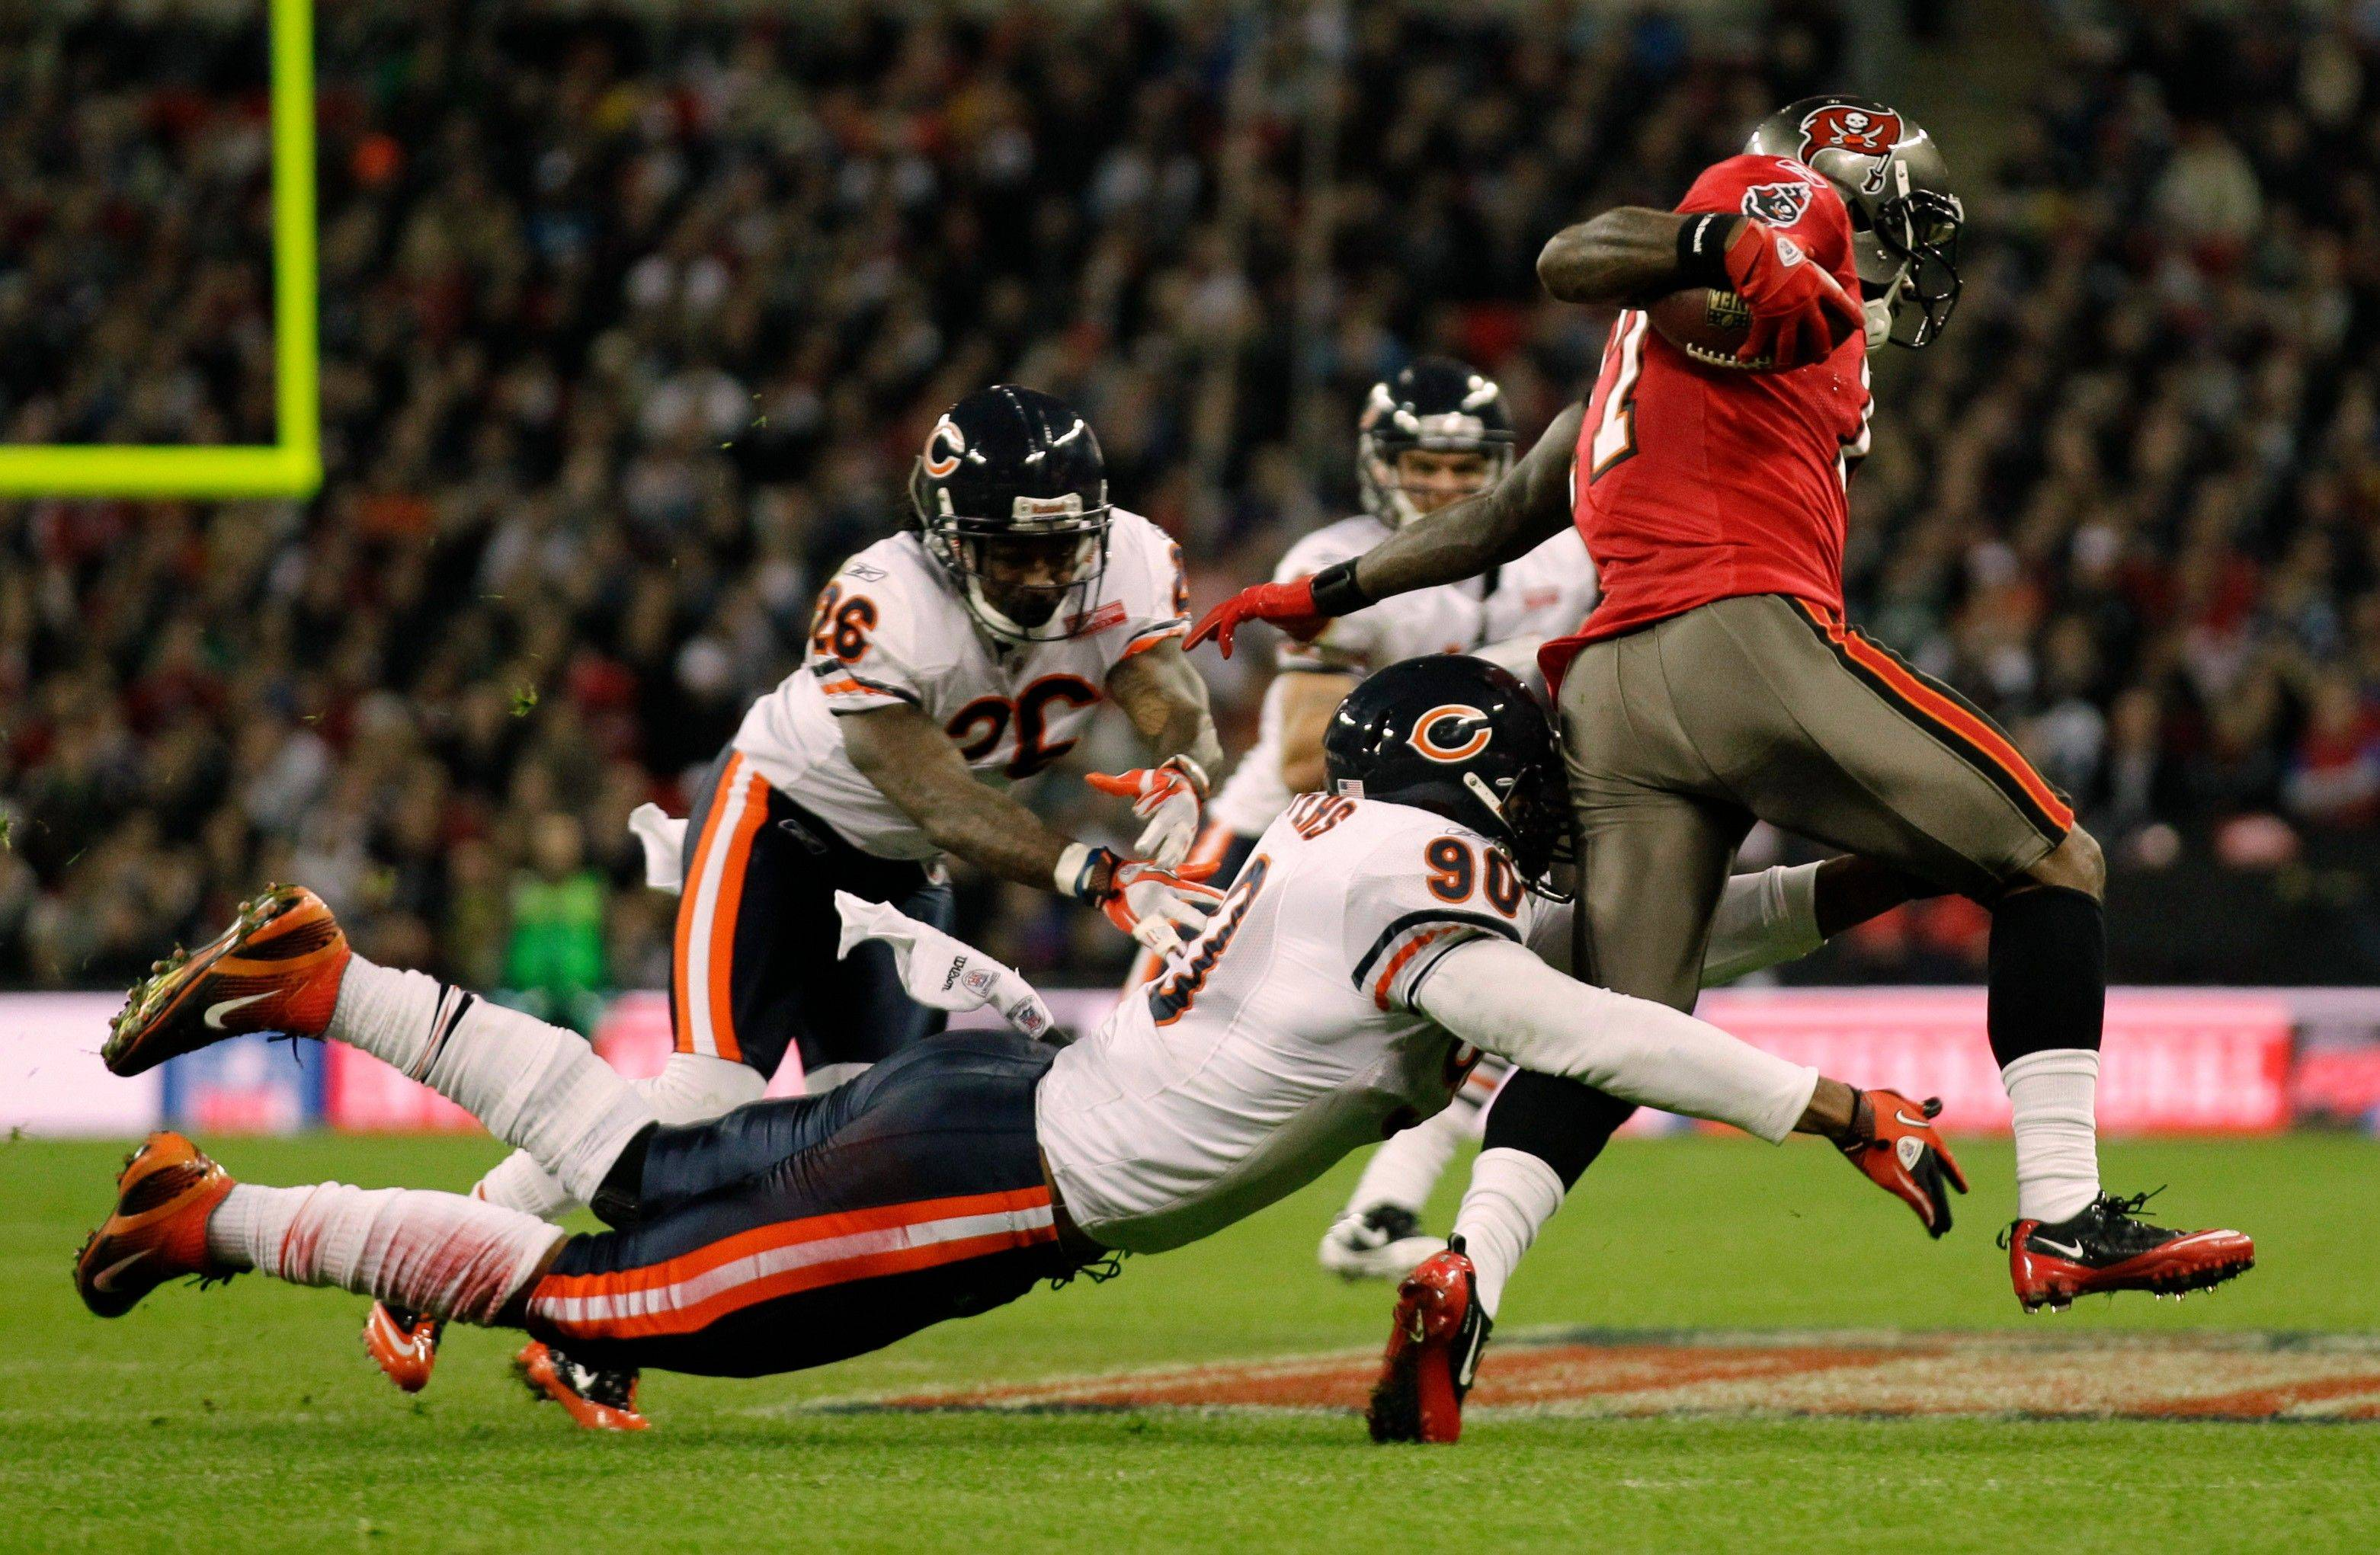 Chicago Bears defensive end Julius Peppers tries to stop Tampa Bay Buccaneers wide receiver Arrelious Benn during the second half.